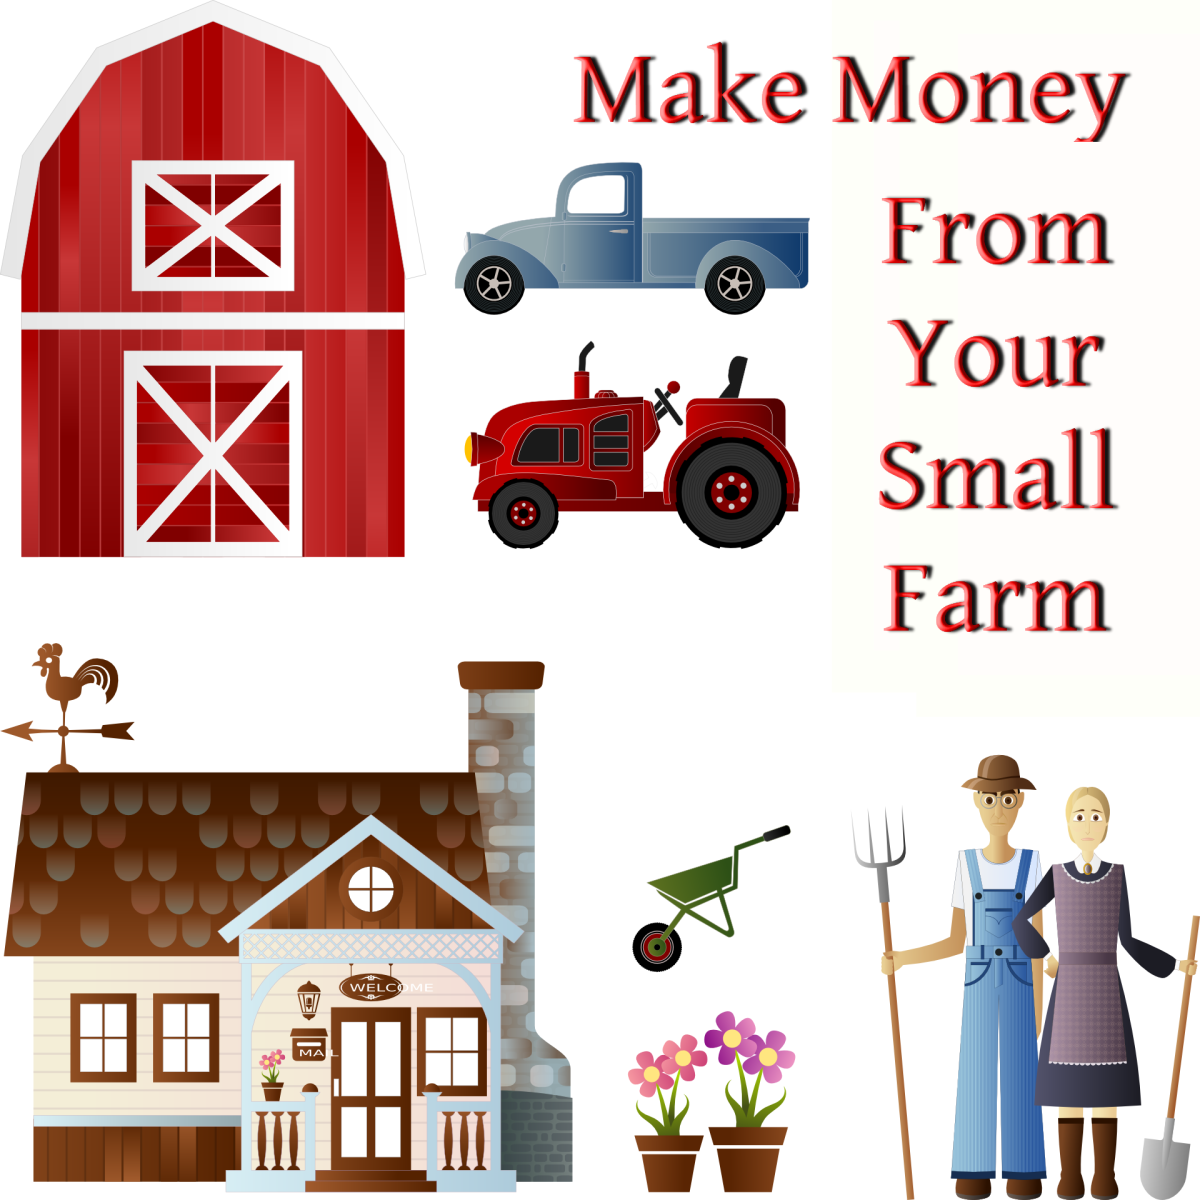 Cattle Ranch Business Plan